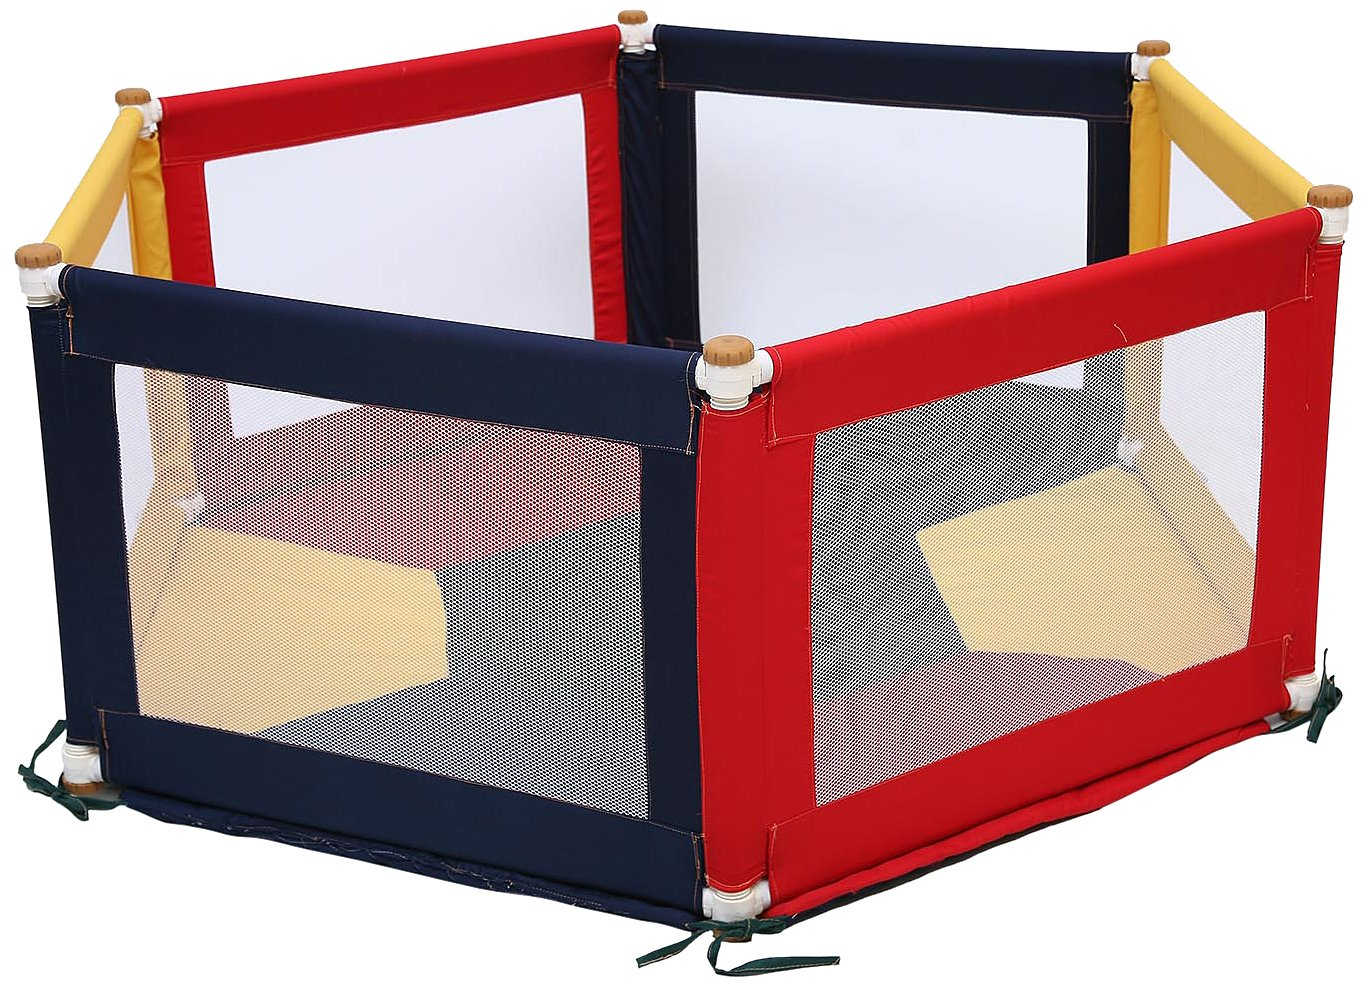 TikkTokk Pokano Fabric Playpen/Mat (Hexagonal, Colourful) TikkTokk Fabric Baby Playpen - keep baby safe & secure whilst providing a large play area Crafted in beautiful, durable polycotton Thick padded, fitted floor mat 2